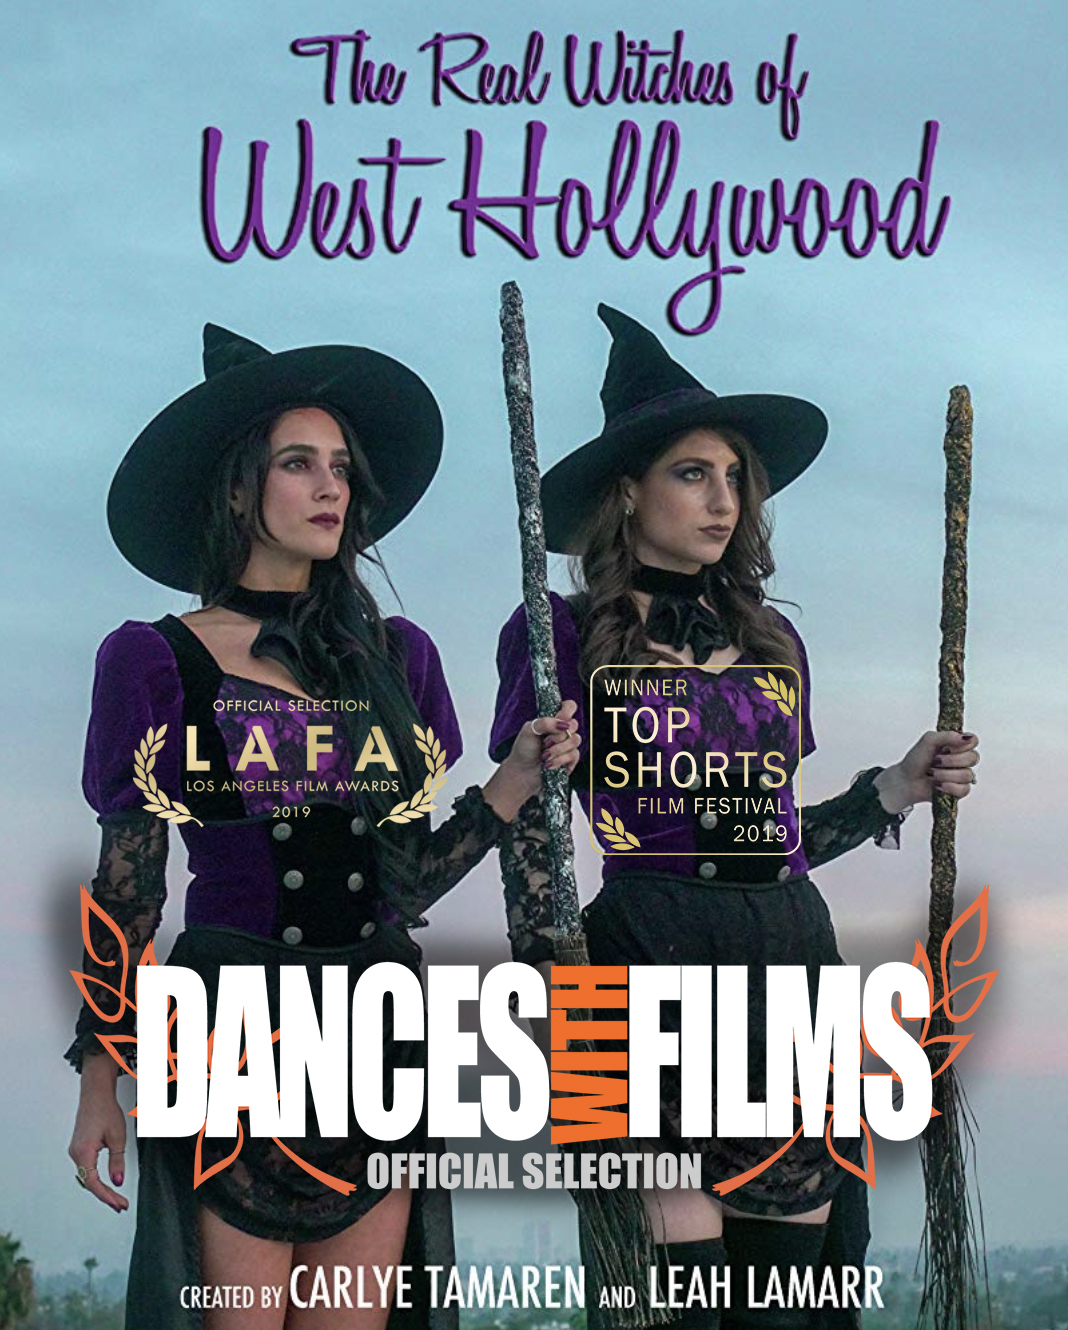 """The Real Witches of West Hollywood"" takes the festival circuit by storm. - Official Selection: LA Film Awards (March 2019).Winner - Honorable Mention (2nd Place): Top Shorts Film Festival (March 2019).Official Selection and World Premiere Screening at DANCES WITH FILMS at the TCL Chinese Theatre Saturday, June 22nd, 2019 at 2:15pm.""The Real Witches of West Hollywood"" is a mockumentary reality TV show about two rich witches living lavishly in Los Angeles."